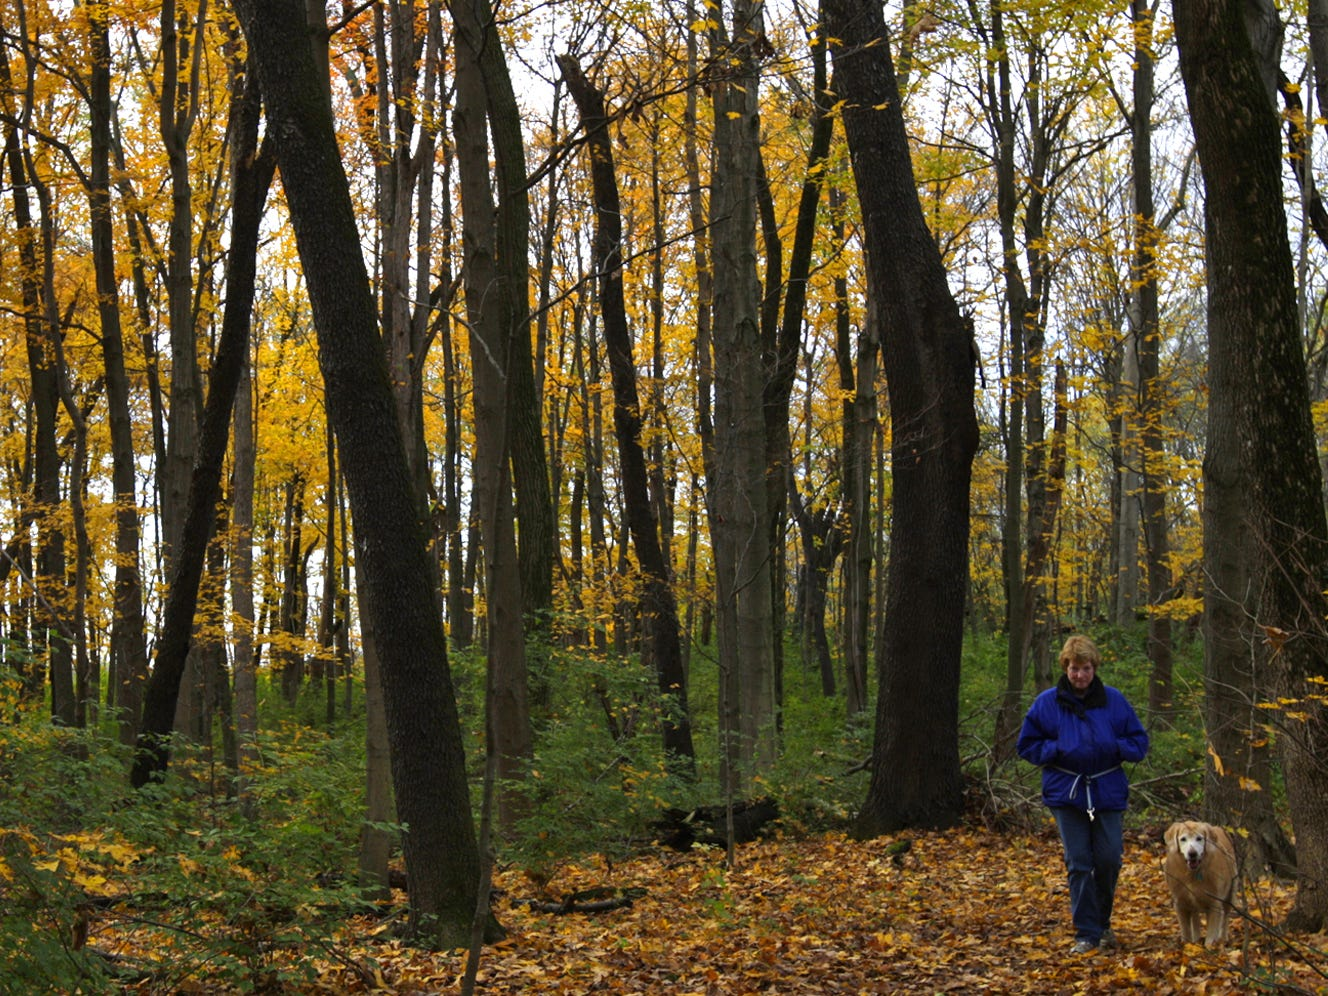 Enjoying the brilliant fall colors, Judi Huff of Greenhills and her 10-year-old dog Bailey walk in Winton Woods near the Great Oaks trail in October 2011.